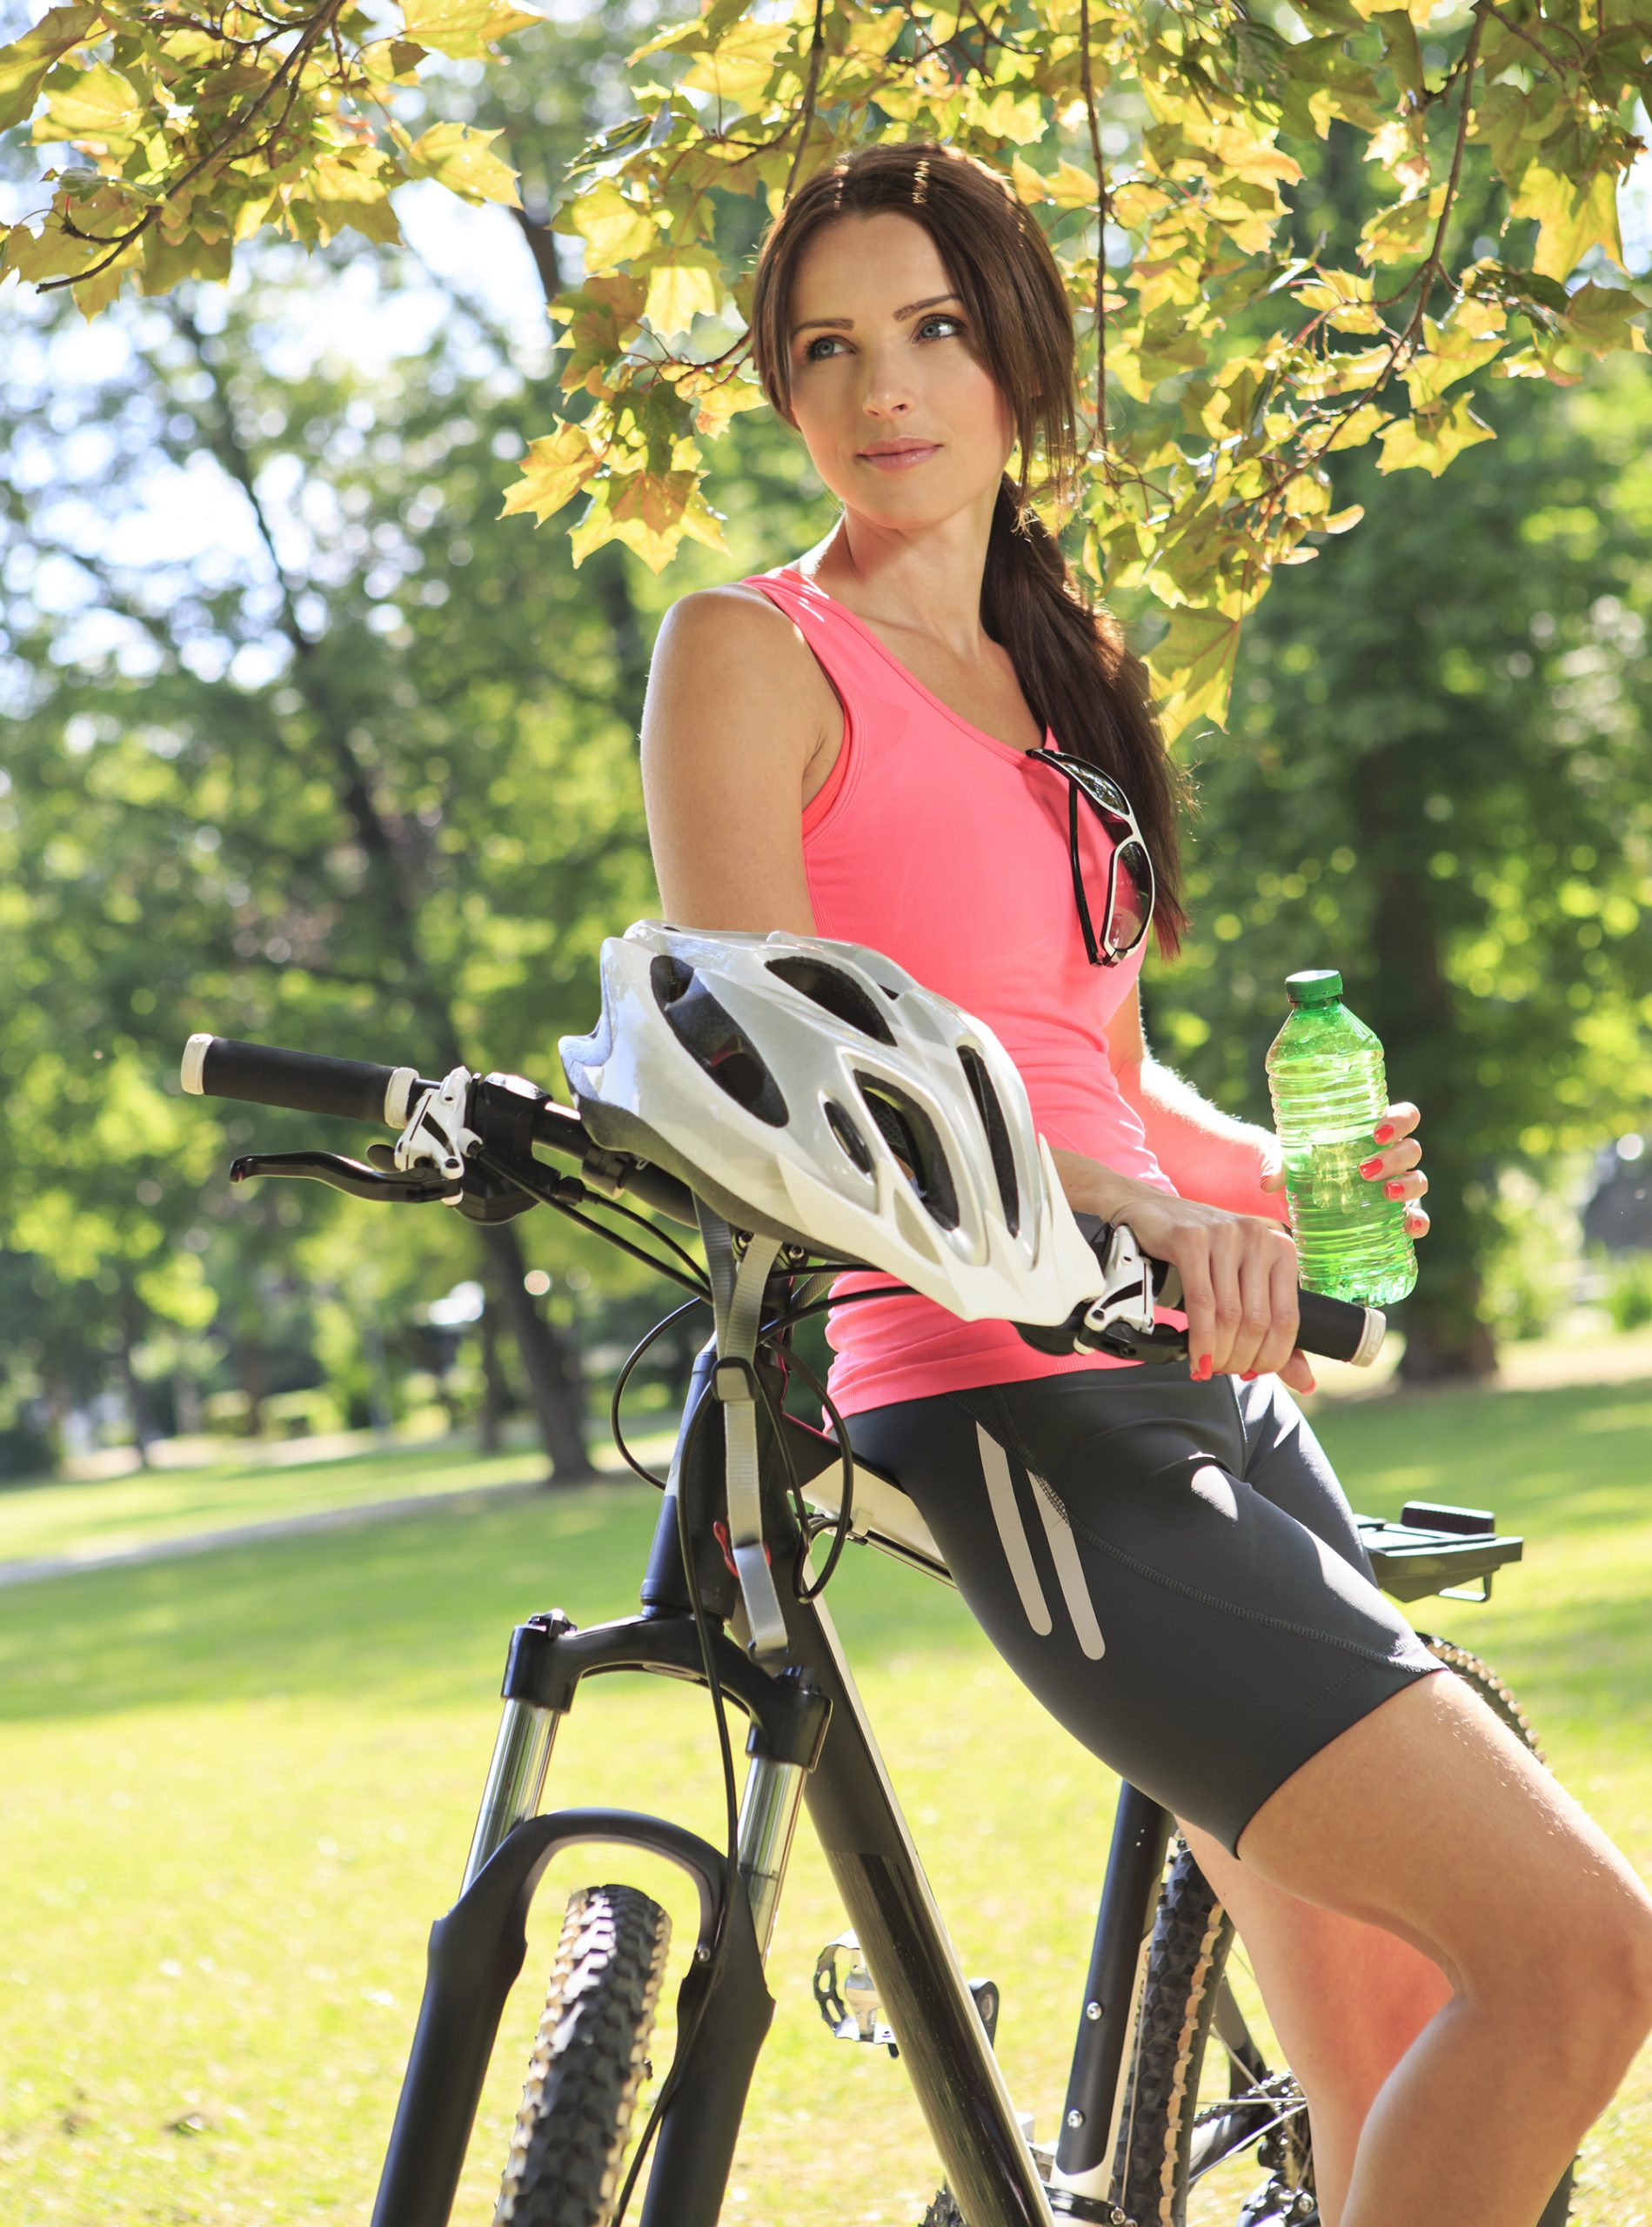 Fit young woman on bike